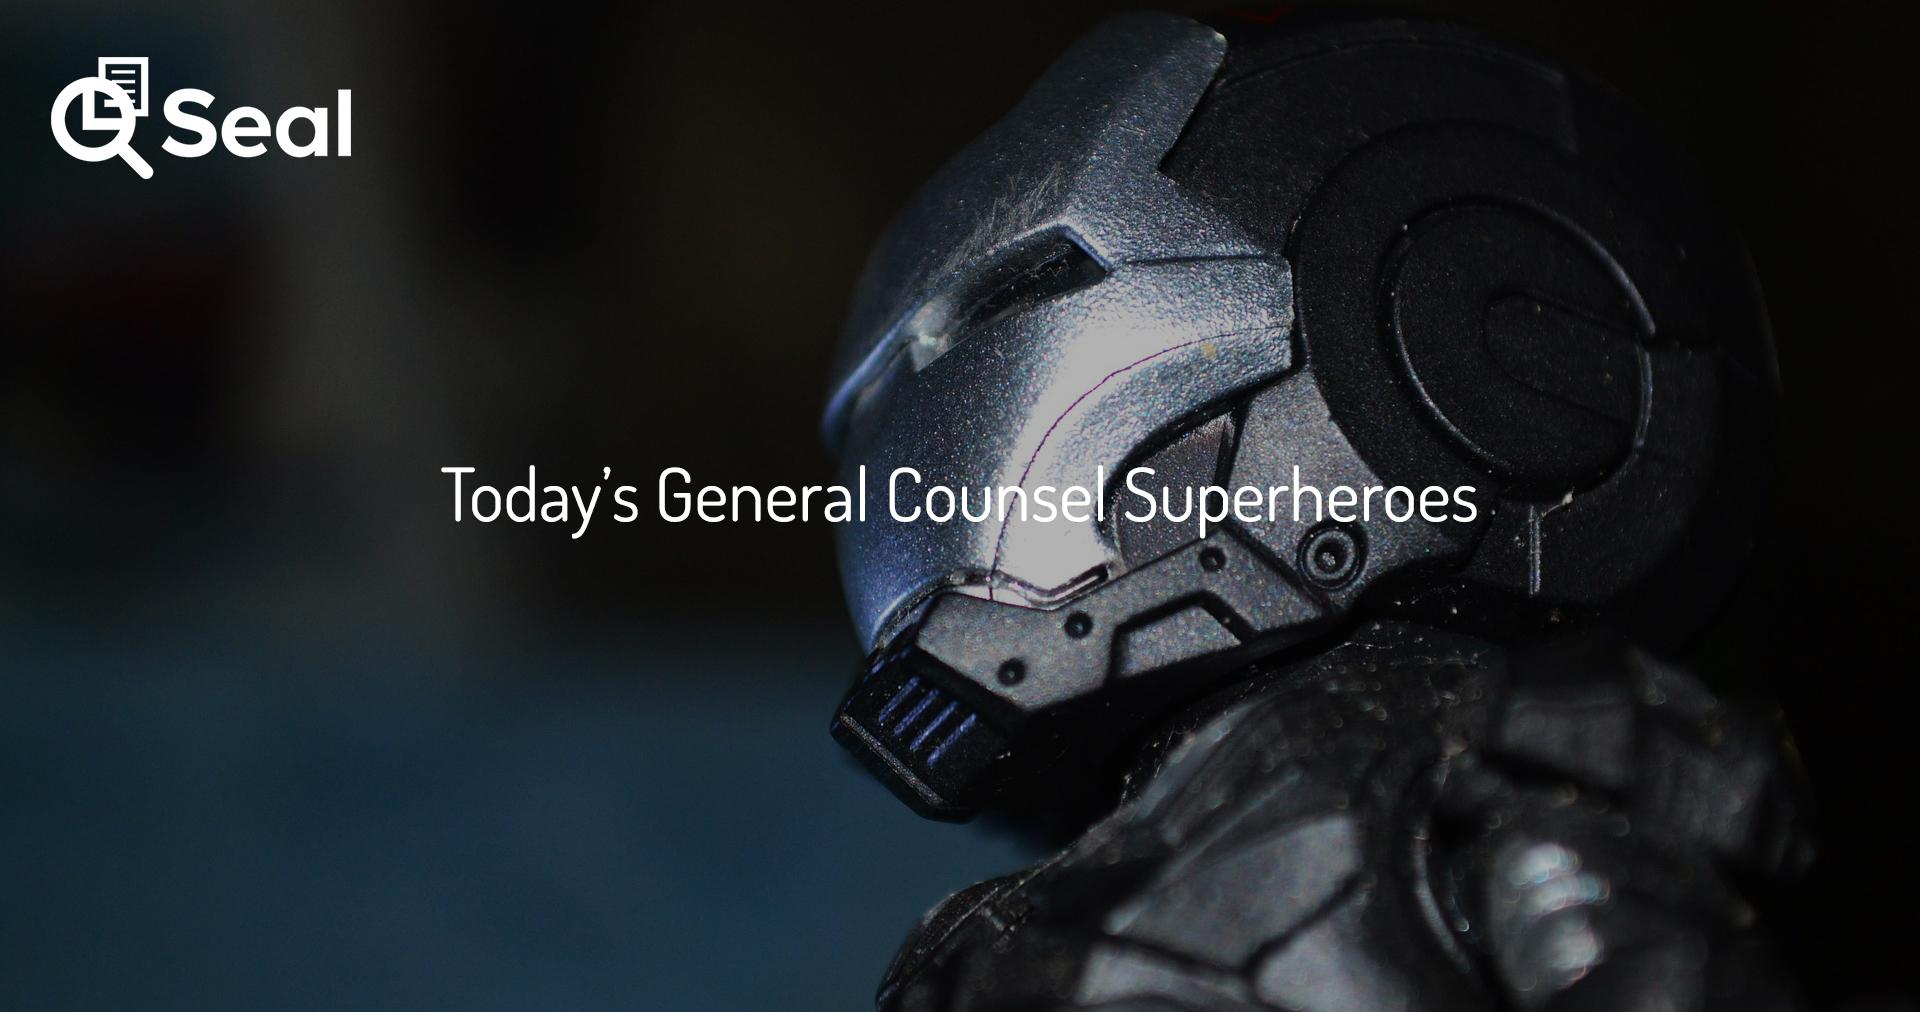 Today's General Counsel Superheroes